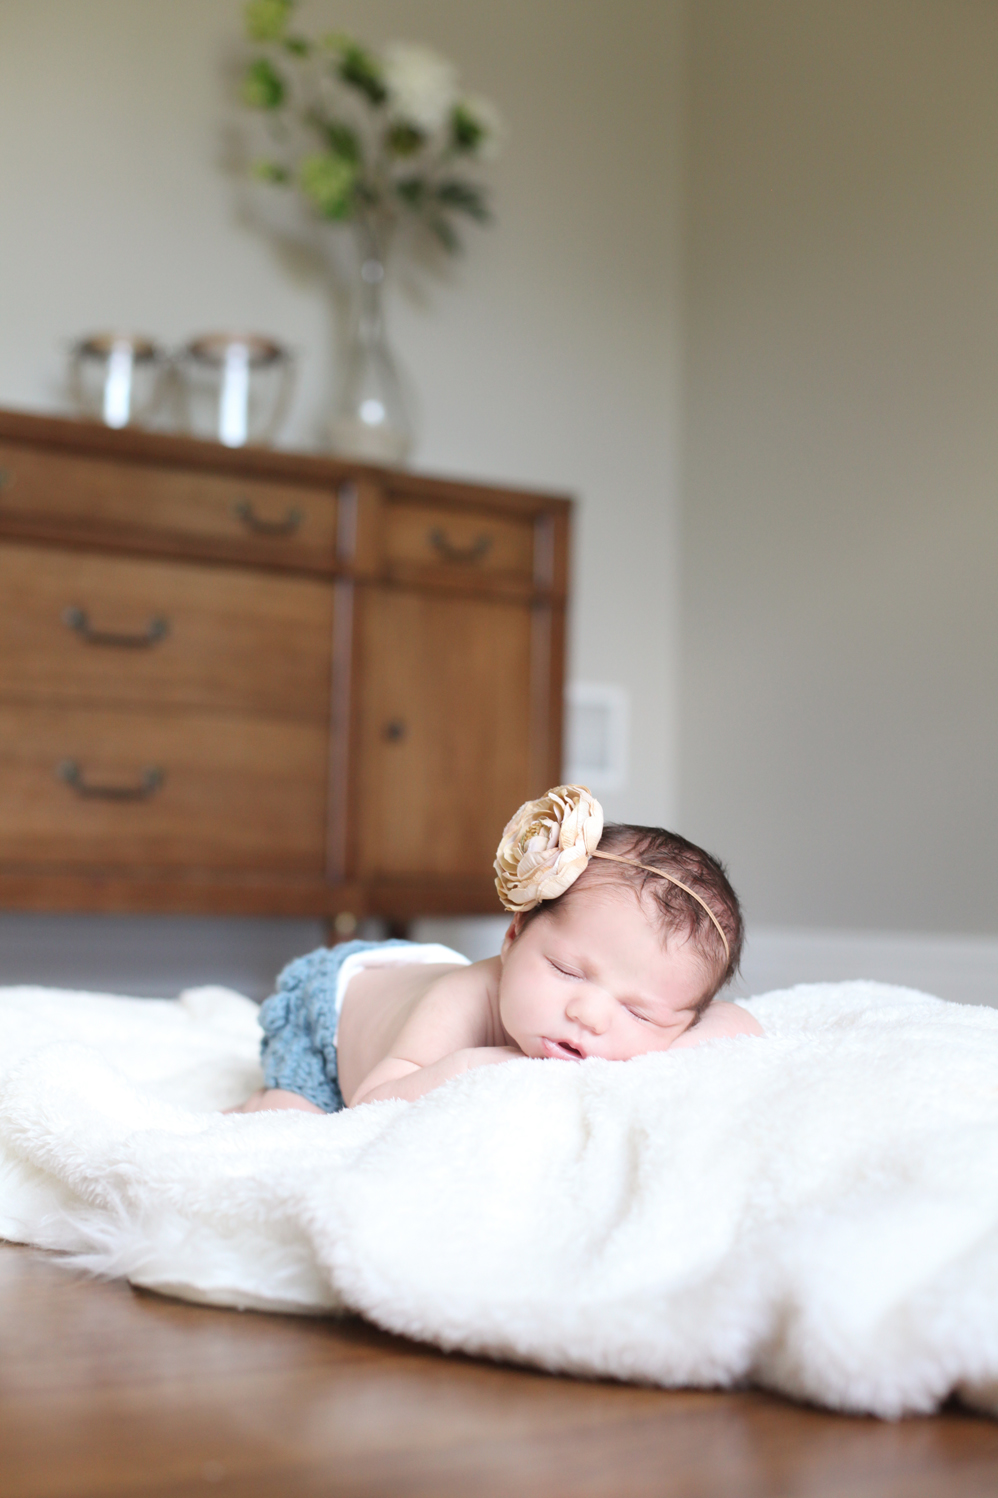 Halley Ann Photography - PREMIER BERGEN COUNTY NEWBORN PHOTOGRAPHER